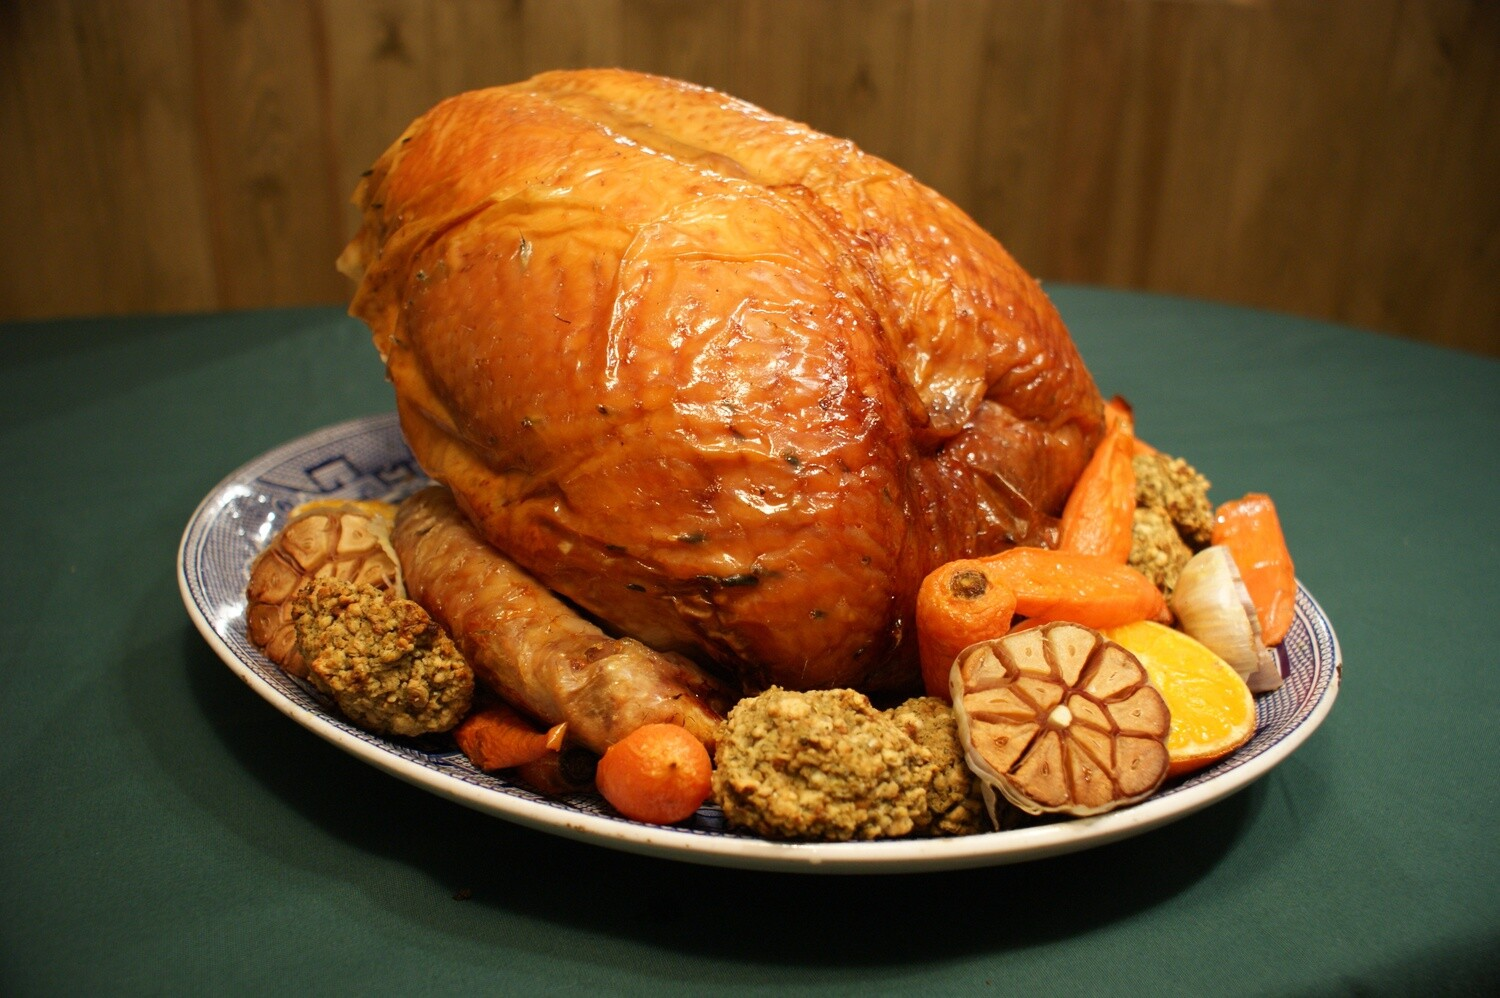 Turkey Crown - Prices from: